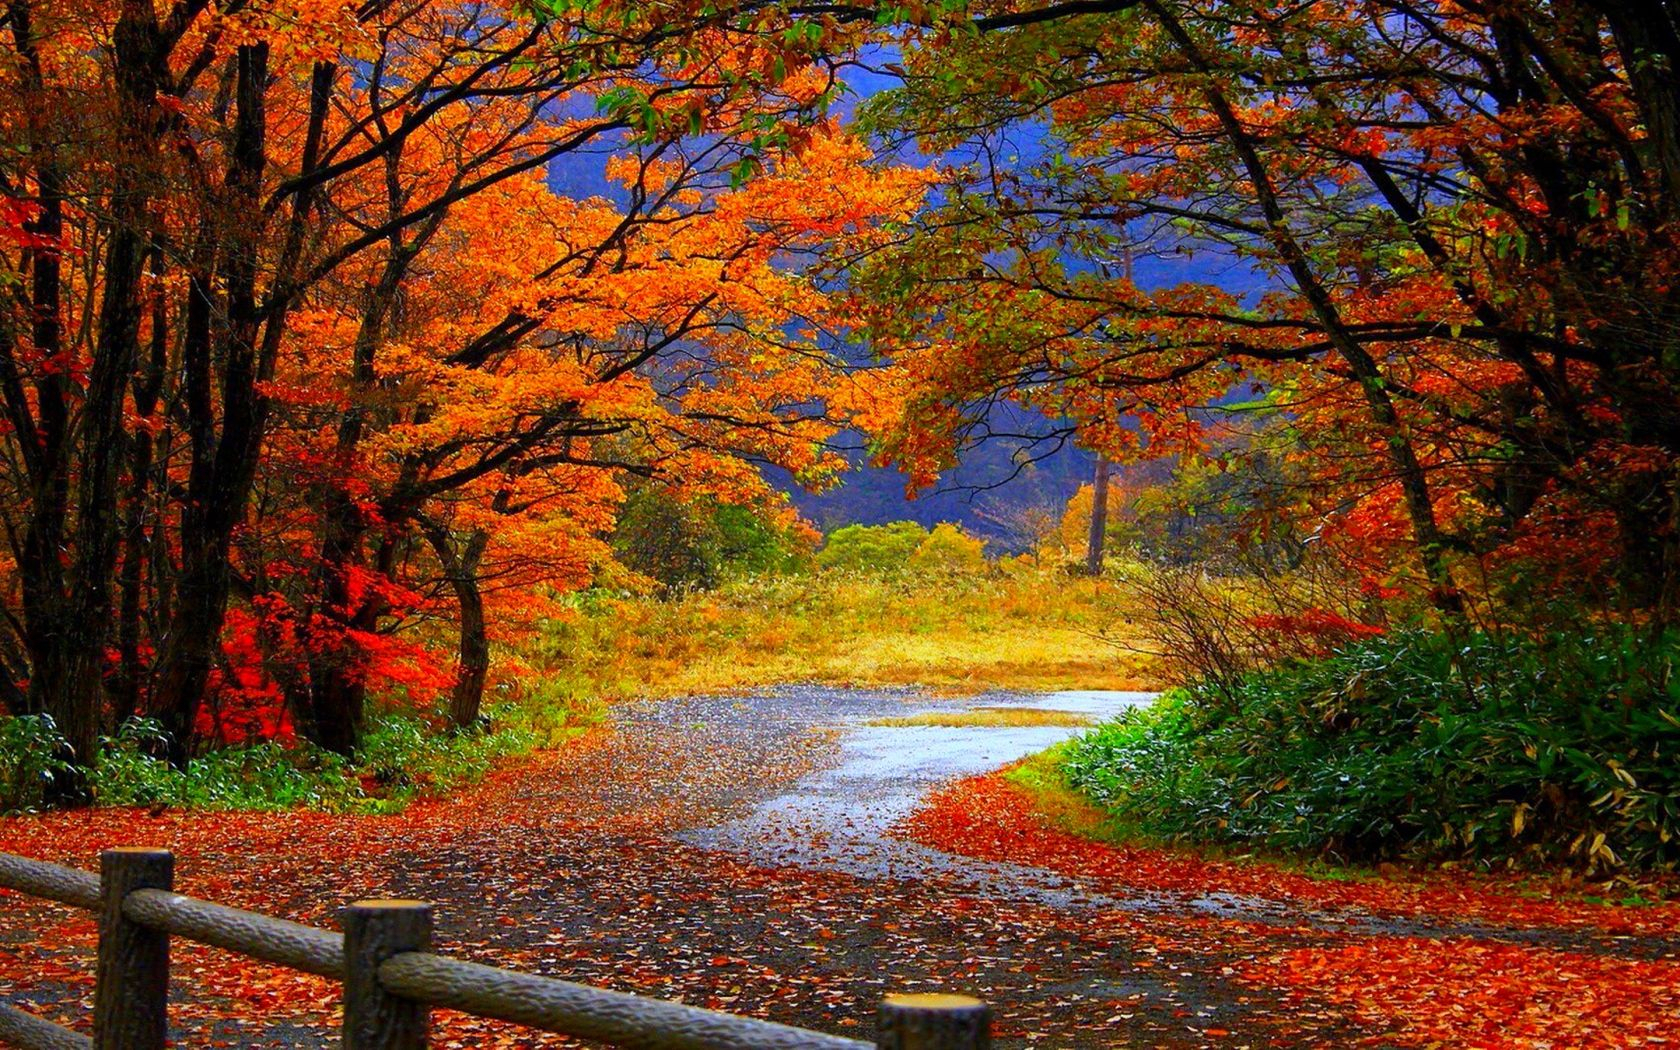 autumn fall scenery wallpaper | nature desktop wallpapers | autumn